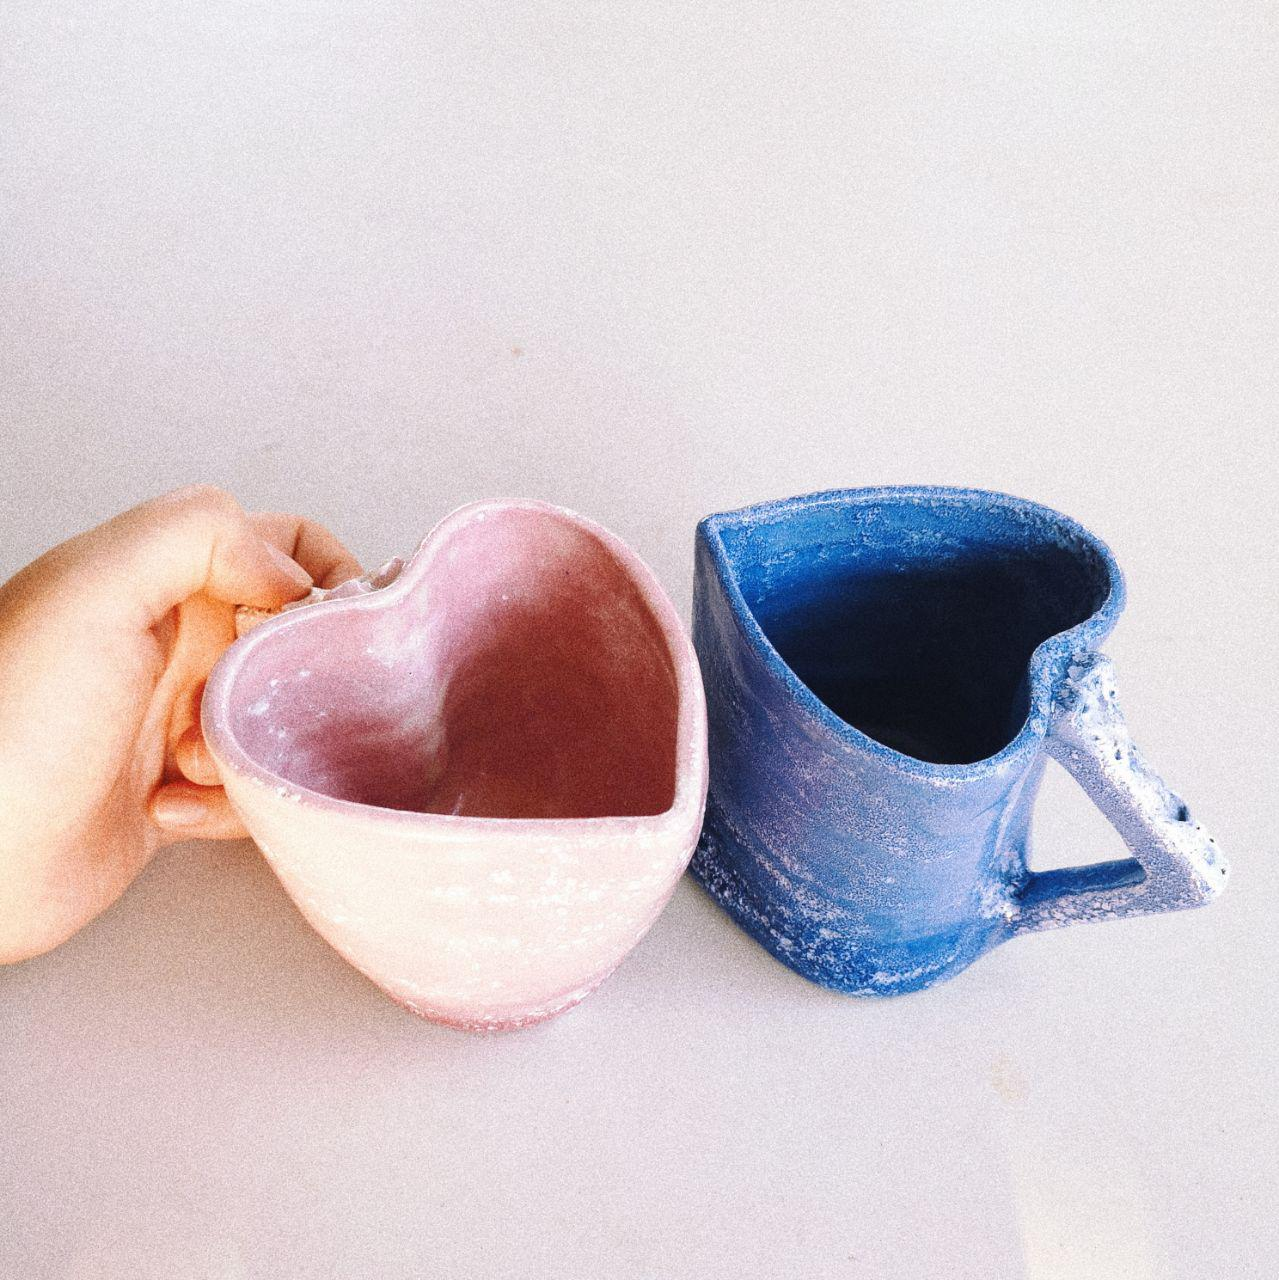 VDay & CNY Themed Handbuilding Pottery Workshop (1- or 2-lessons) - For Children and Adults